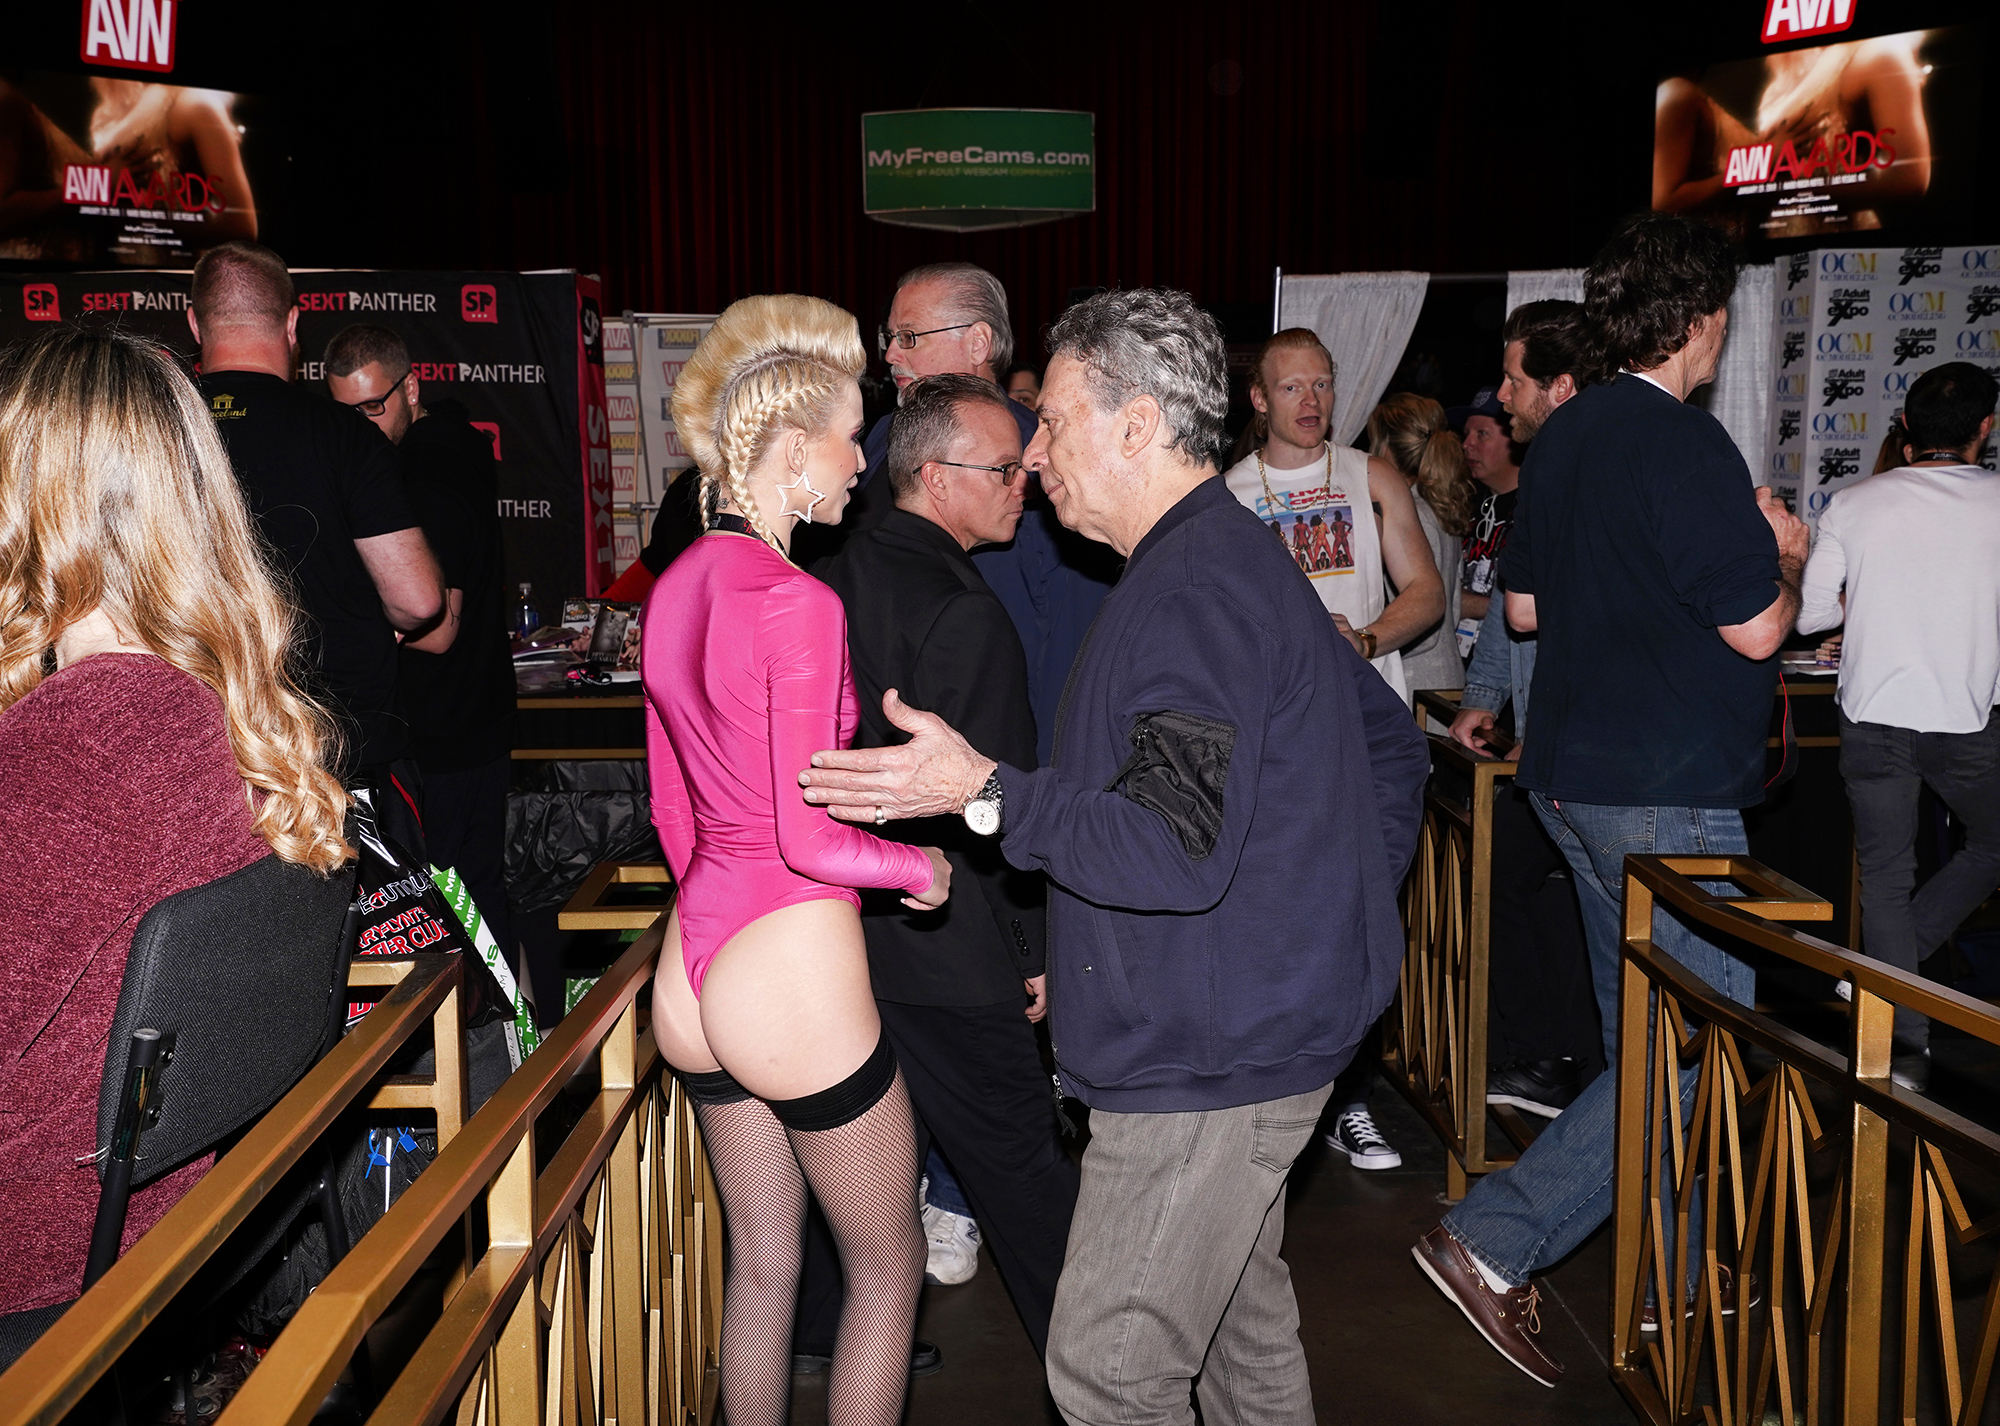 A man talking to a porn performer